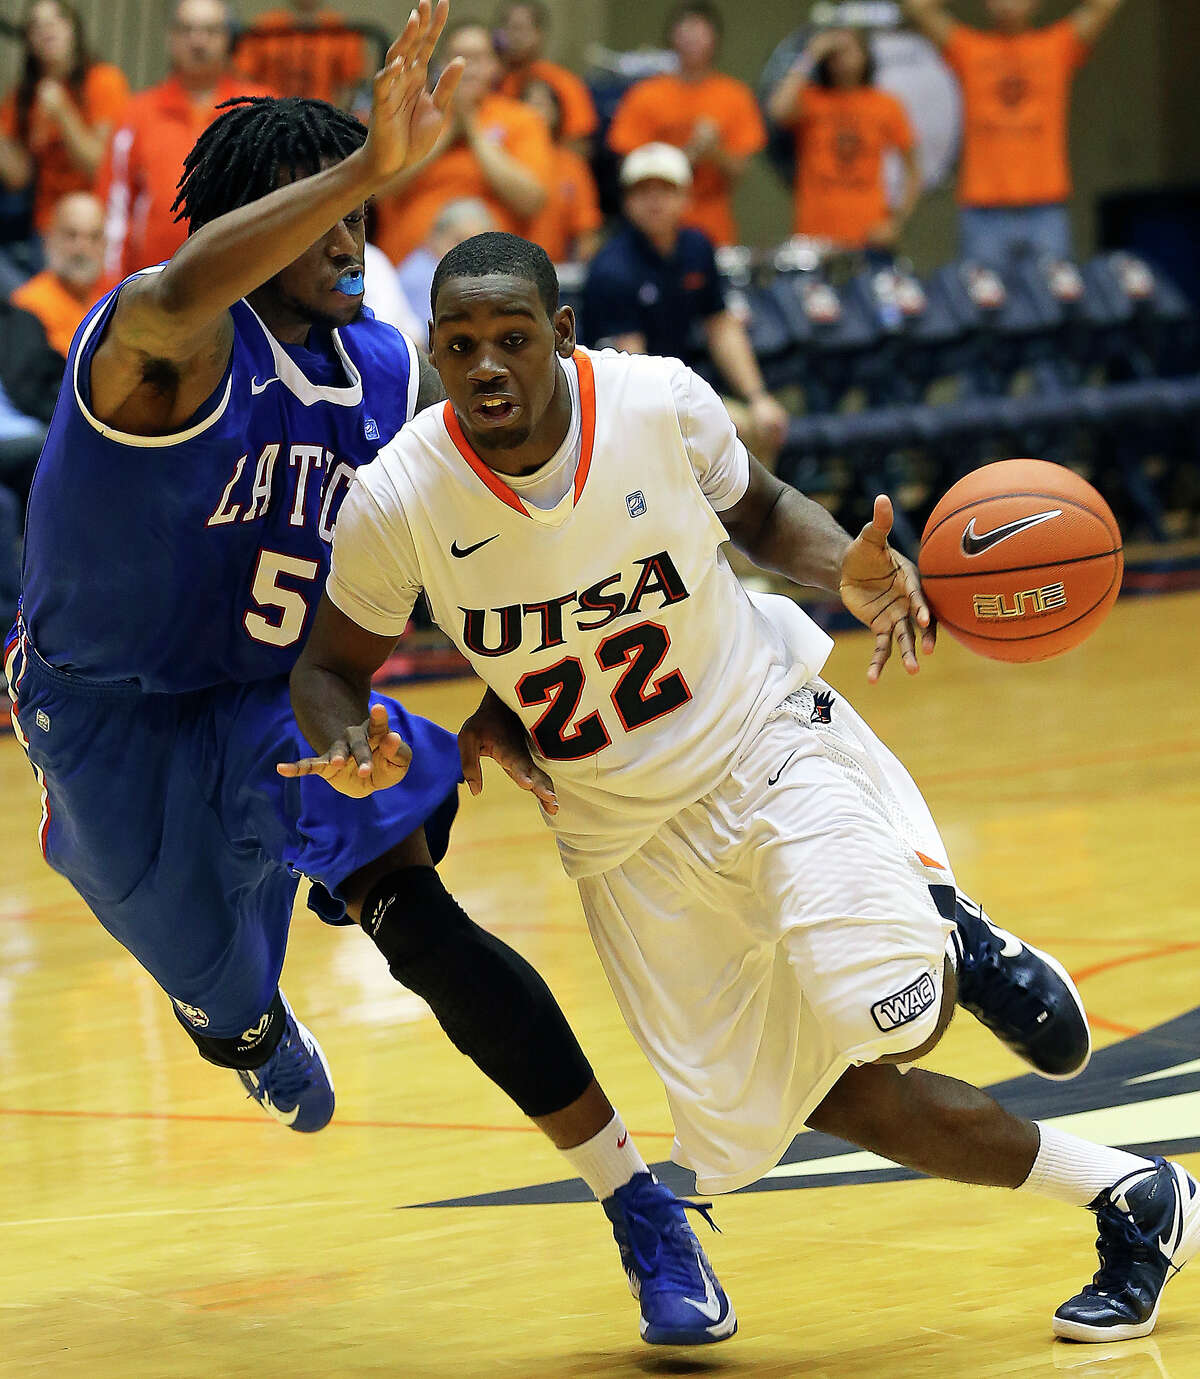 Roadrunner guard Kannon Burrage loses control of the ball on the last possession of the game as he drives past Chris Anderson with only seconds remaining as UTSA plays Louisiana Tech in mens' basketball at the UTSA Convocation Center on January 12, 2013.